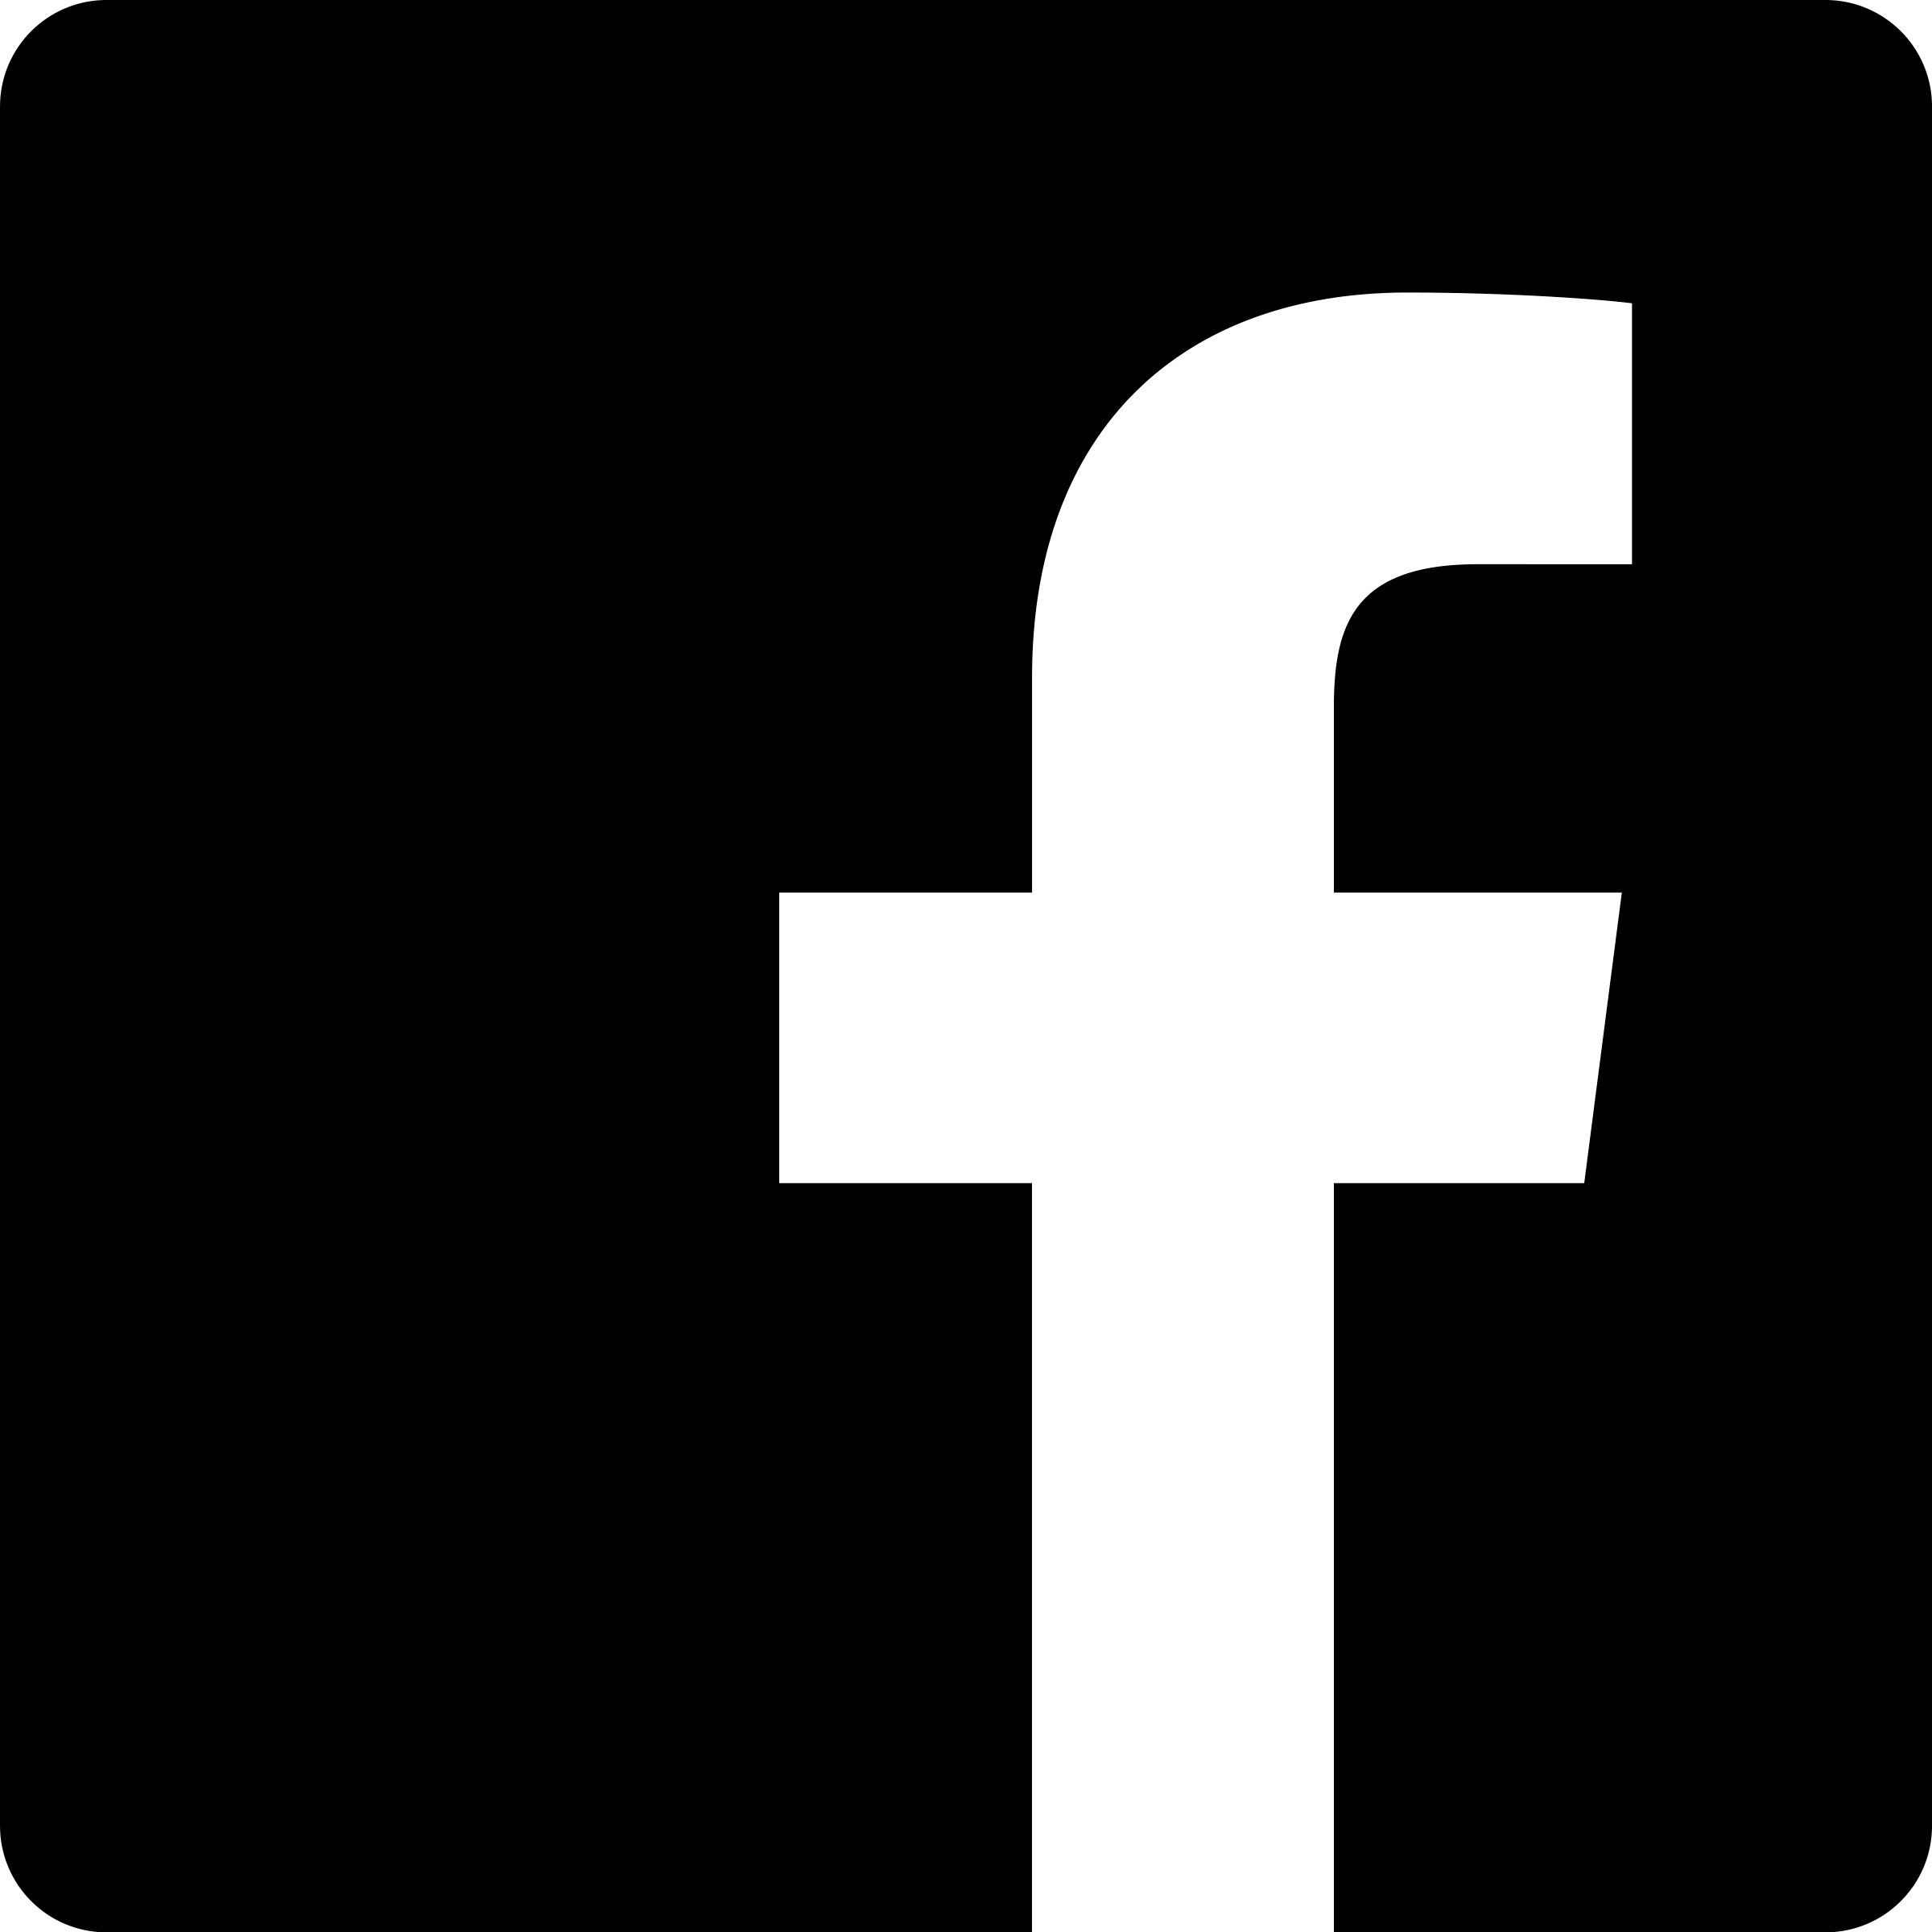 Facebook Logo PNG Transparent & SVG Vector.